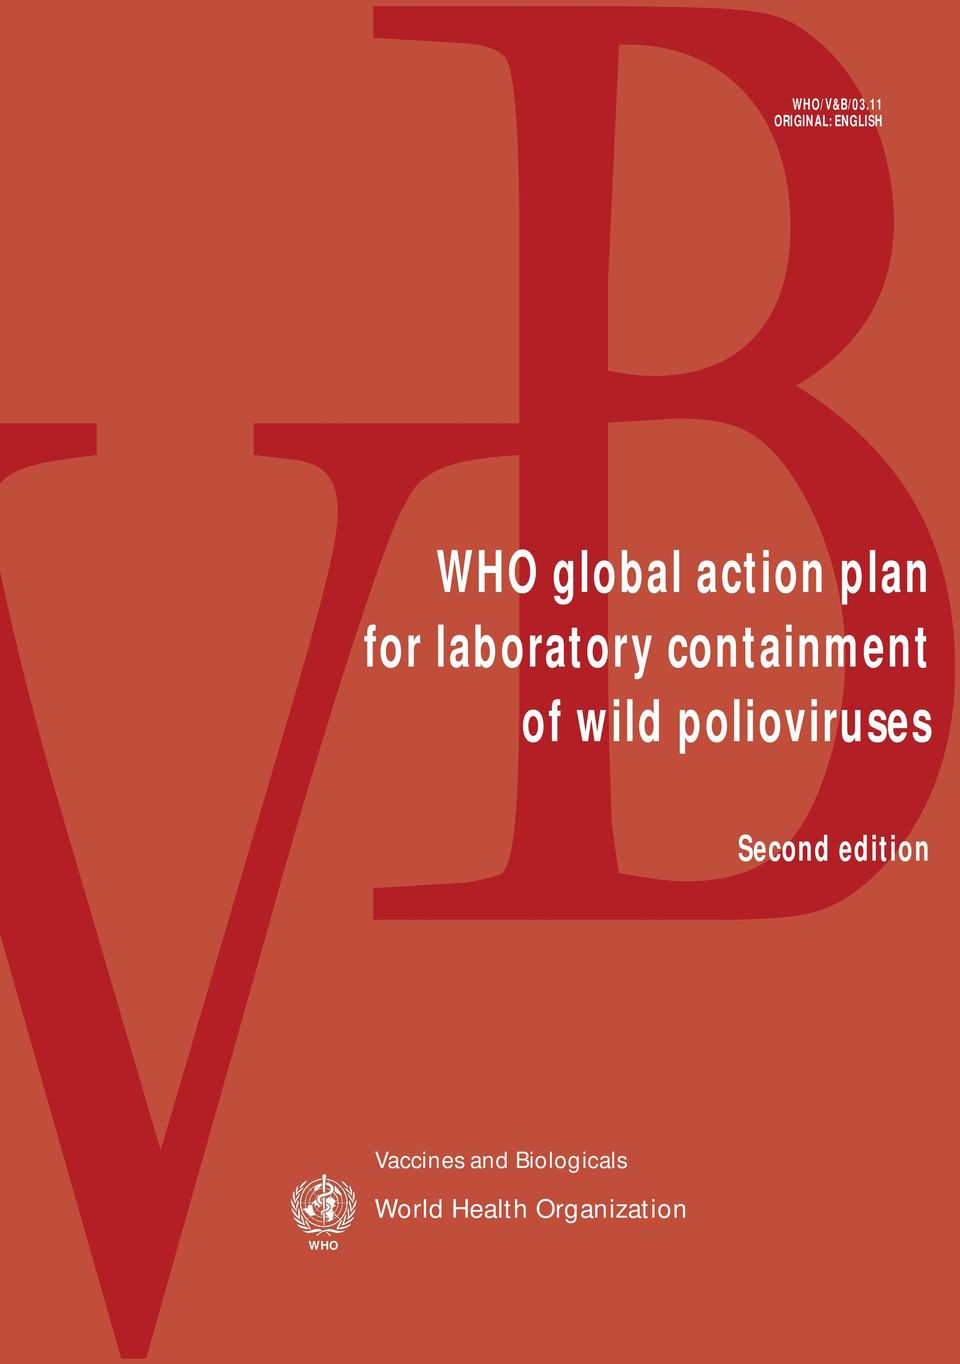 plan for laboratory containment of wild